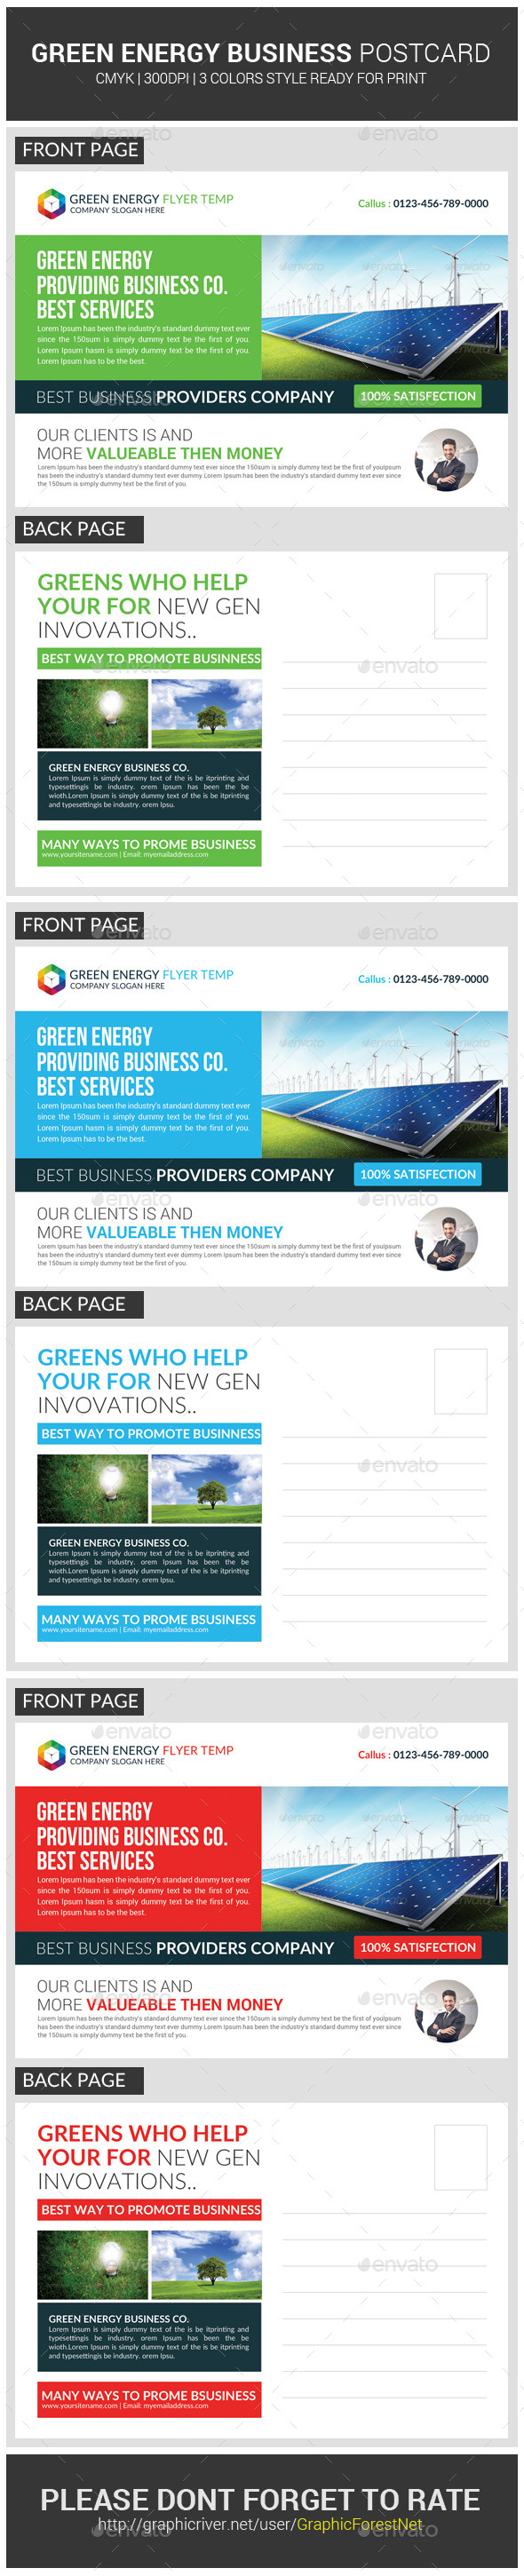 Green Energy Business Postcard Template Photoshop PSD Ecological Corporate O Available Here